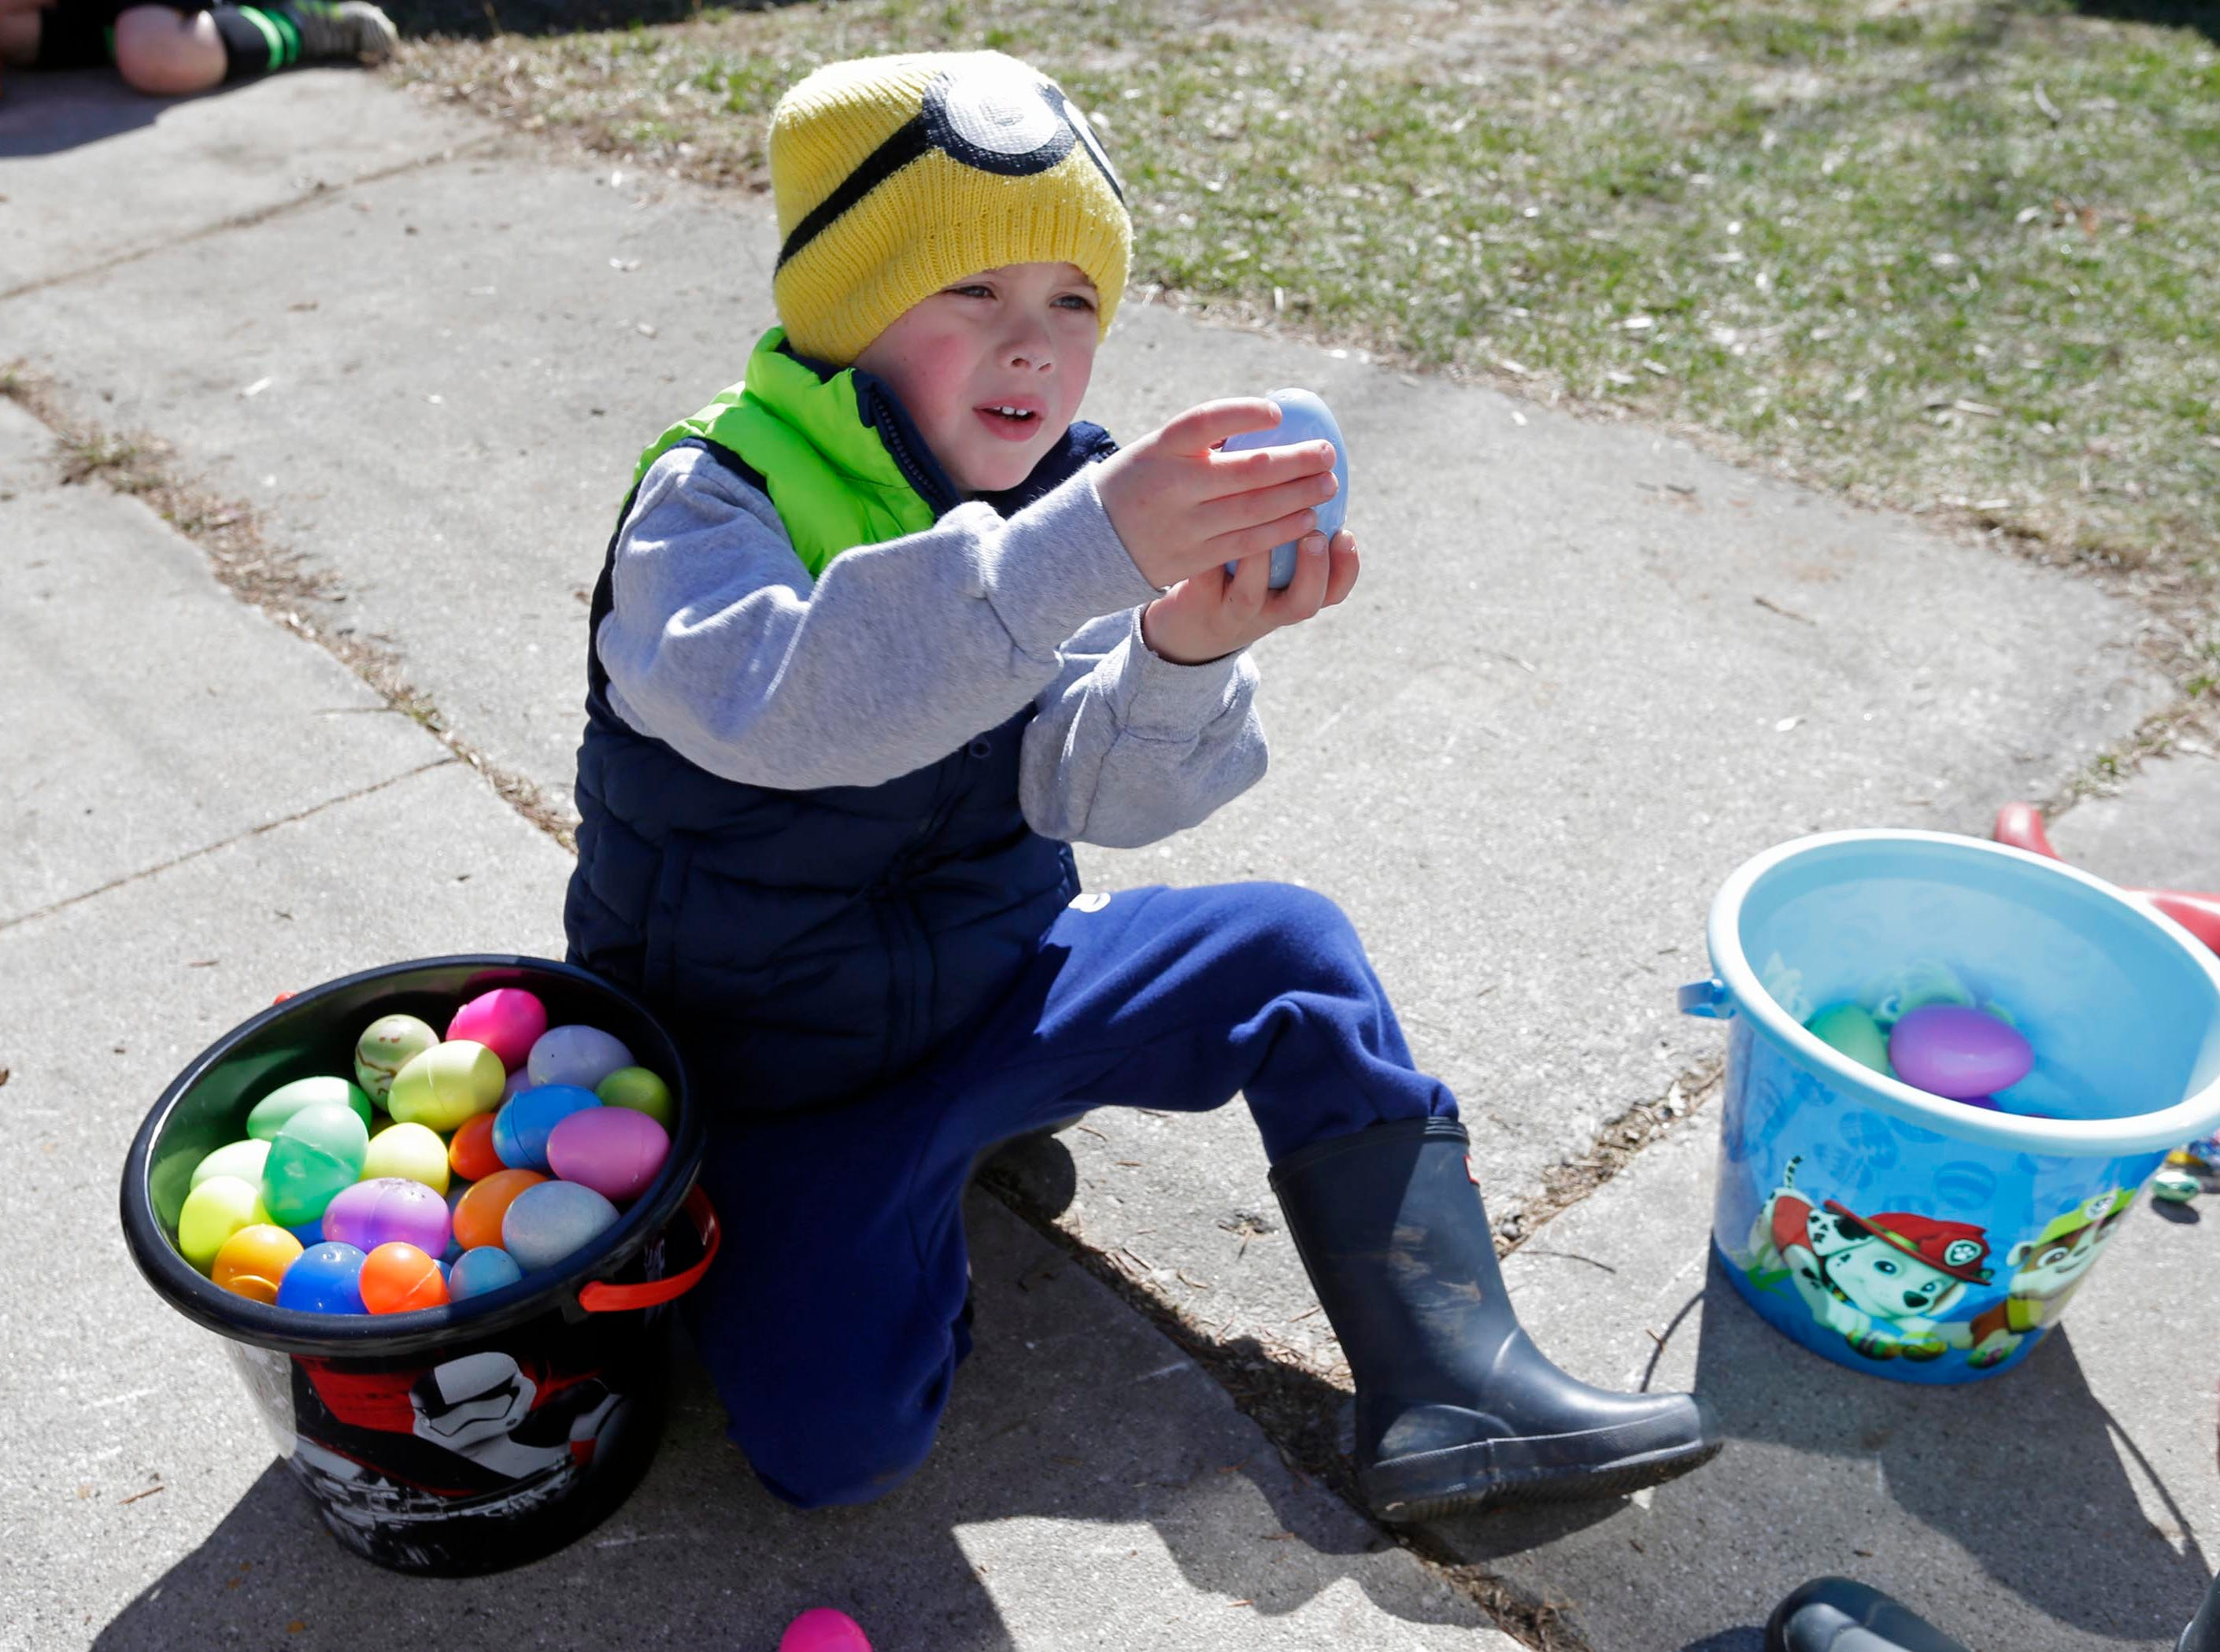 Oliver Ries,6, of Sheboygan, opens his Easter eggs after collecting them at the Hocevar Easter Egg Hunt, Saturday, April 20, 2019, in Sheboygan Falls, Wis.  This years marks 25 years for the Hocevar Family holding an Easter egg hunt at their home, according to Kathy Hocevar.